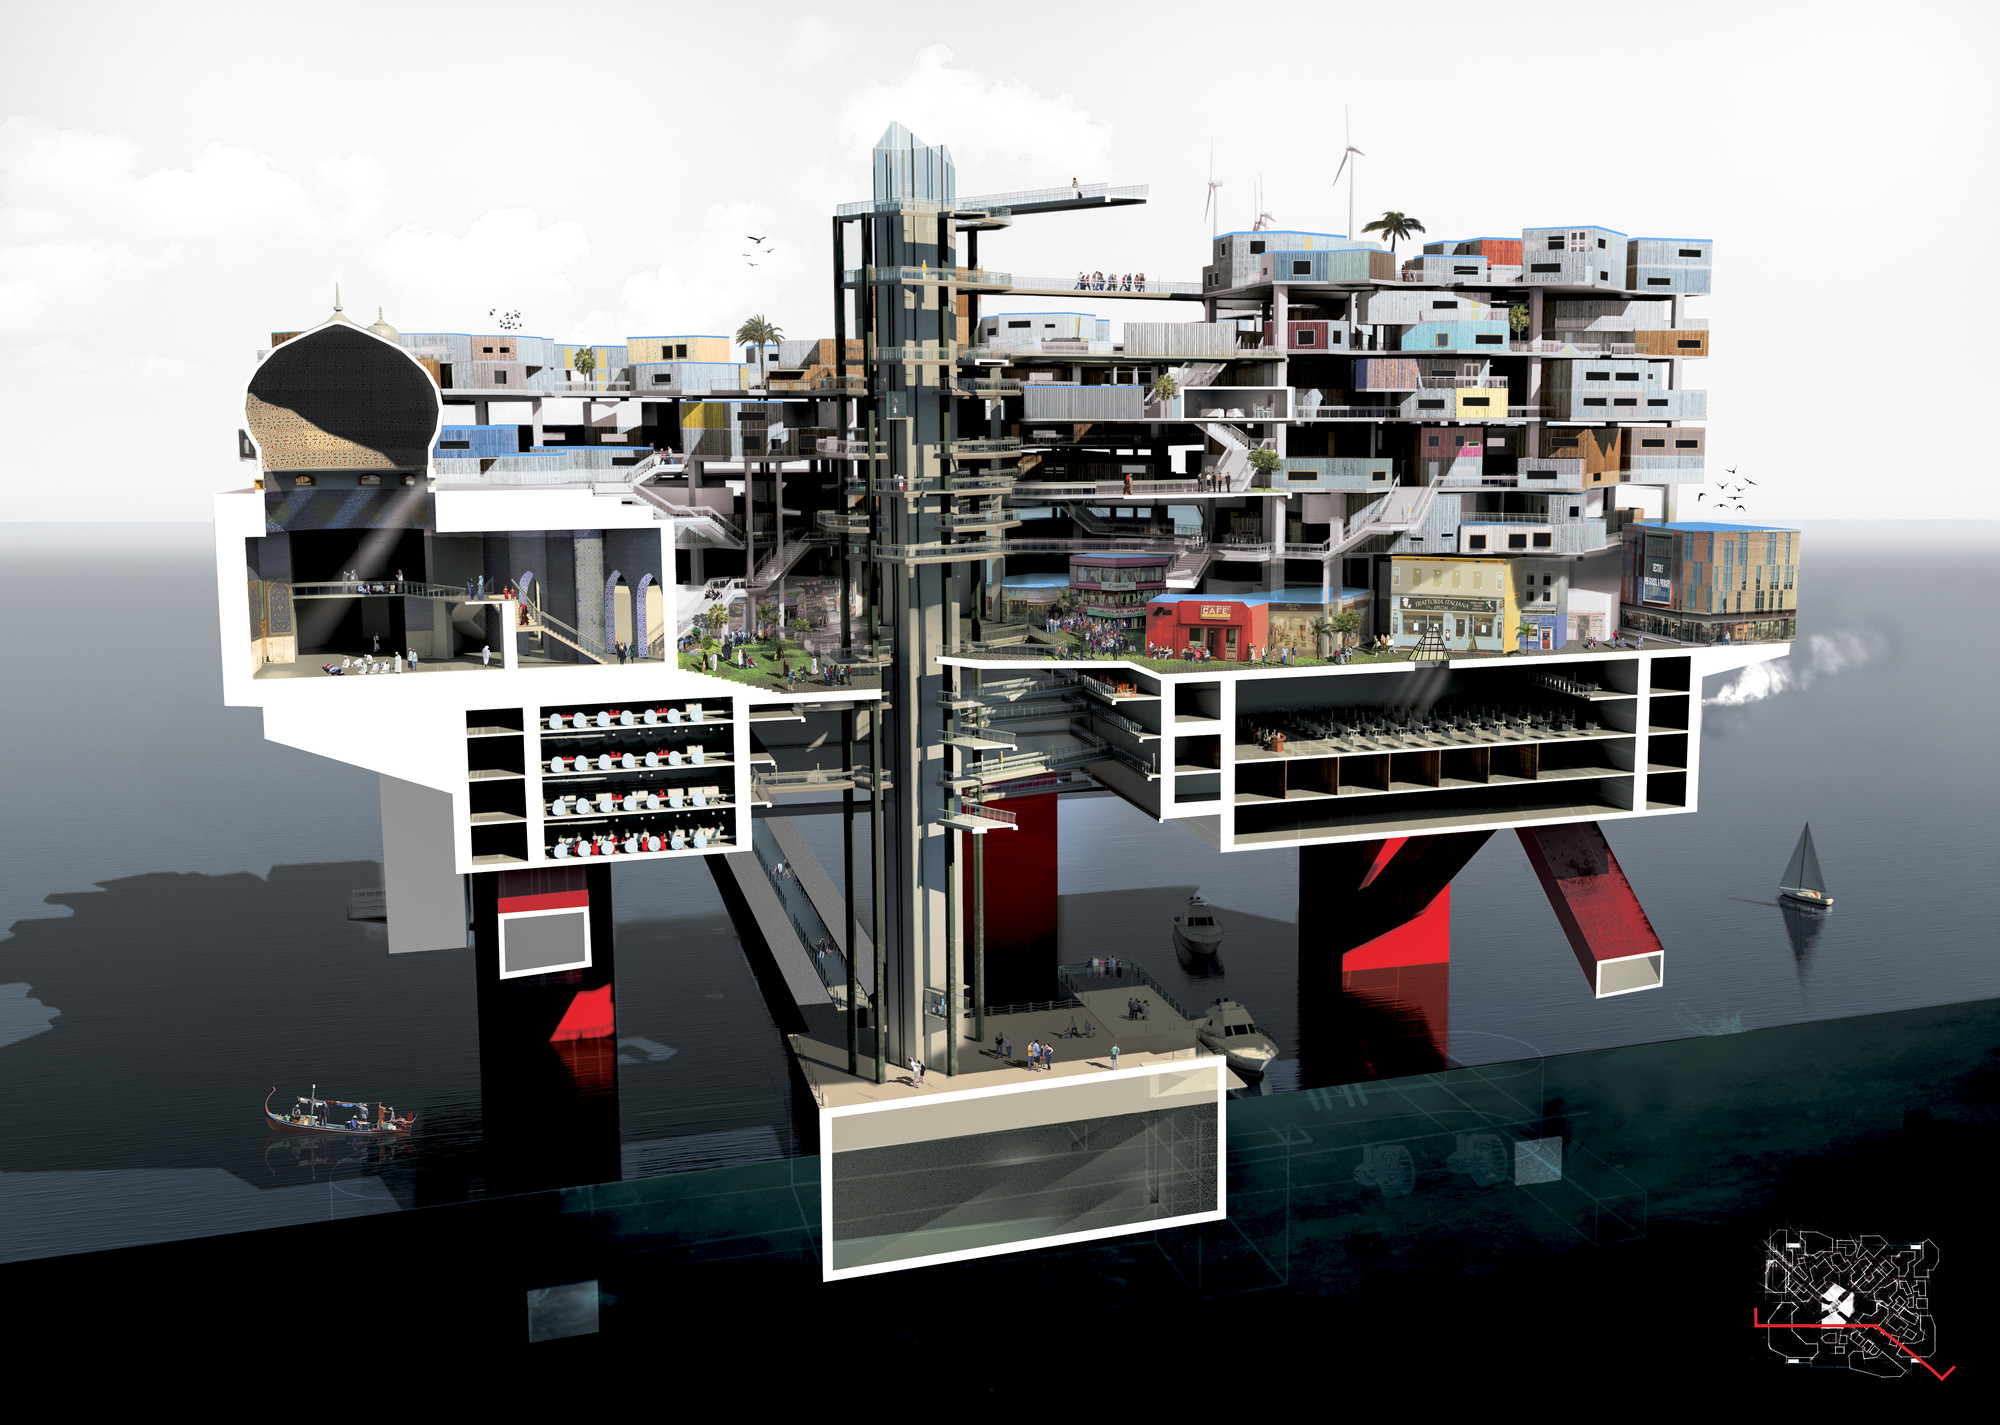 A cutaway section of the proposed oil rig structure. Image © Mayank Thammalla